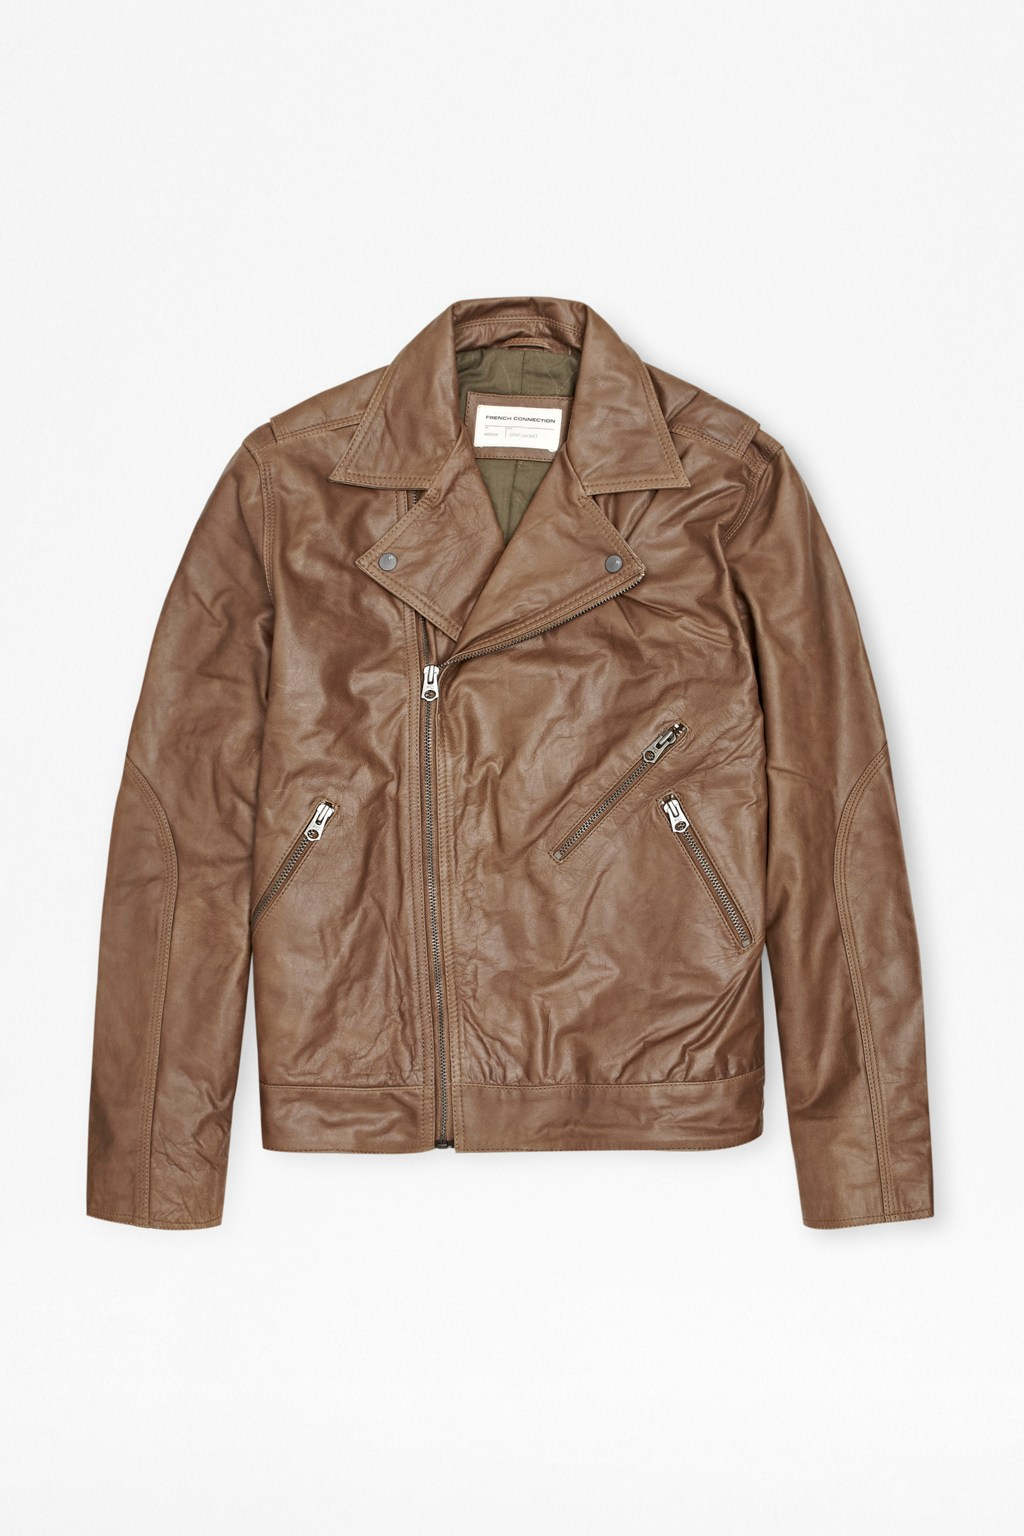 French Connection Sabah Leather Biker Jacket in Chocolate (Black) for Men